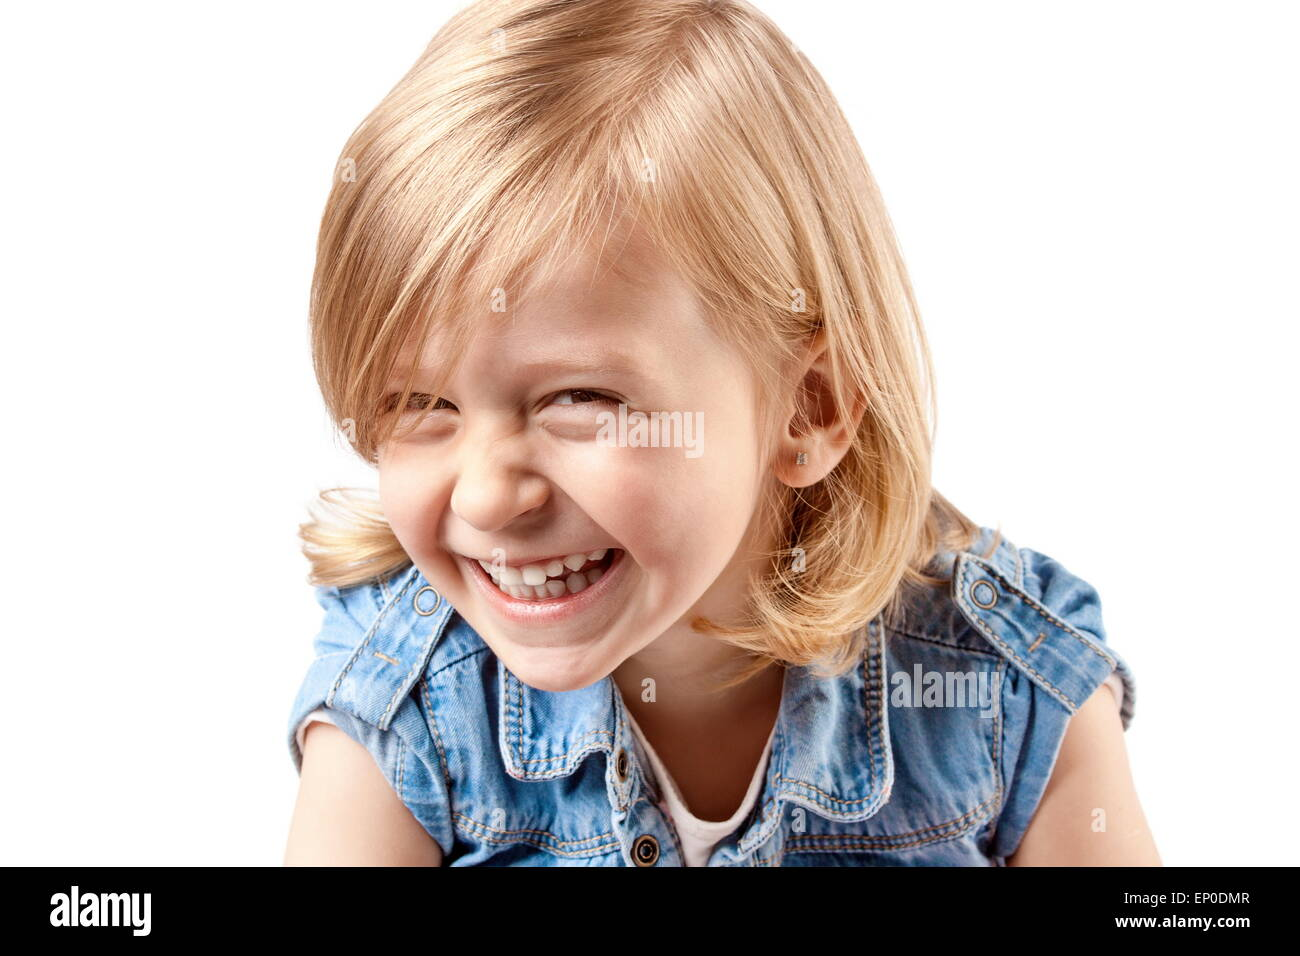 Little girl playing, laughing and having fun - Stock Image